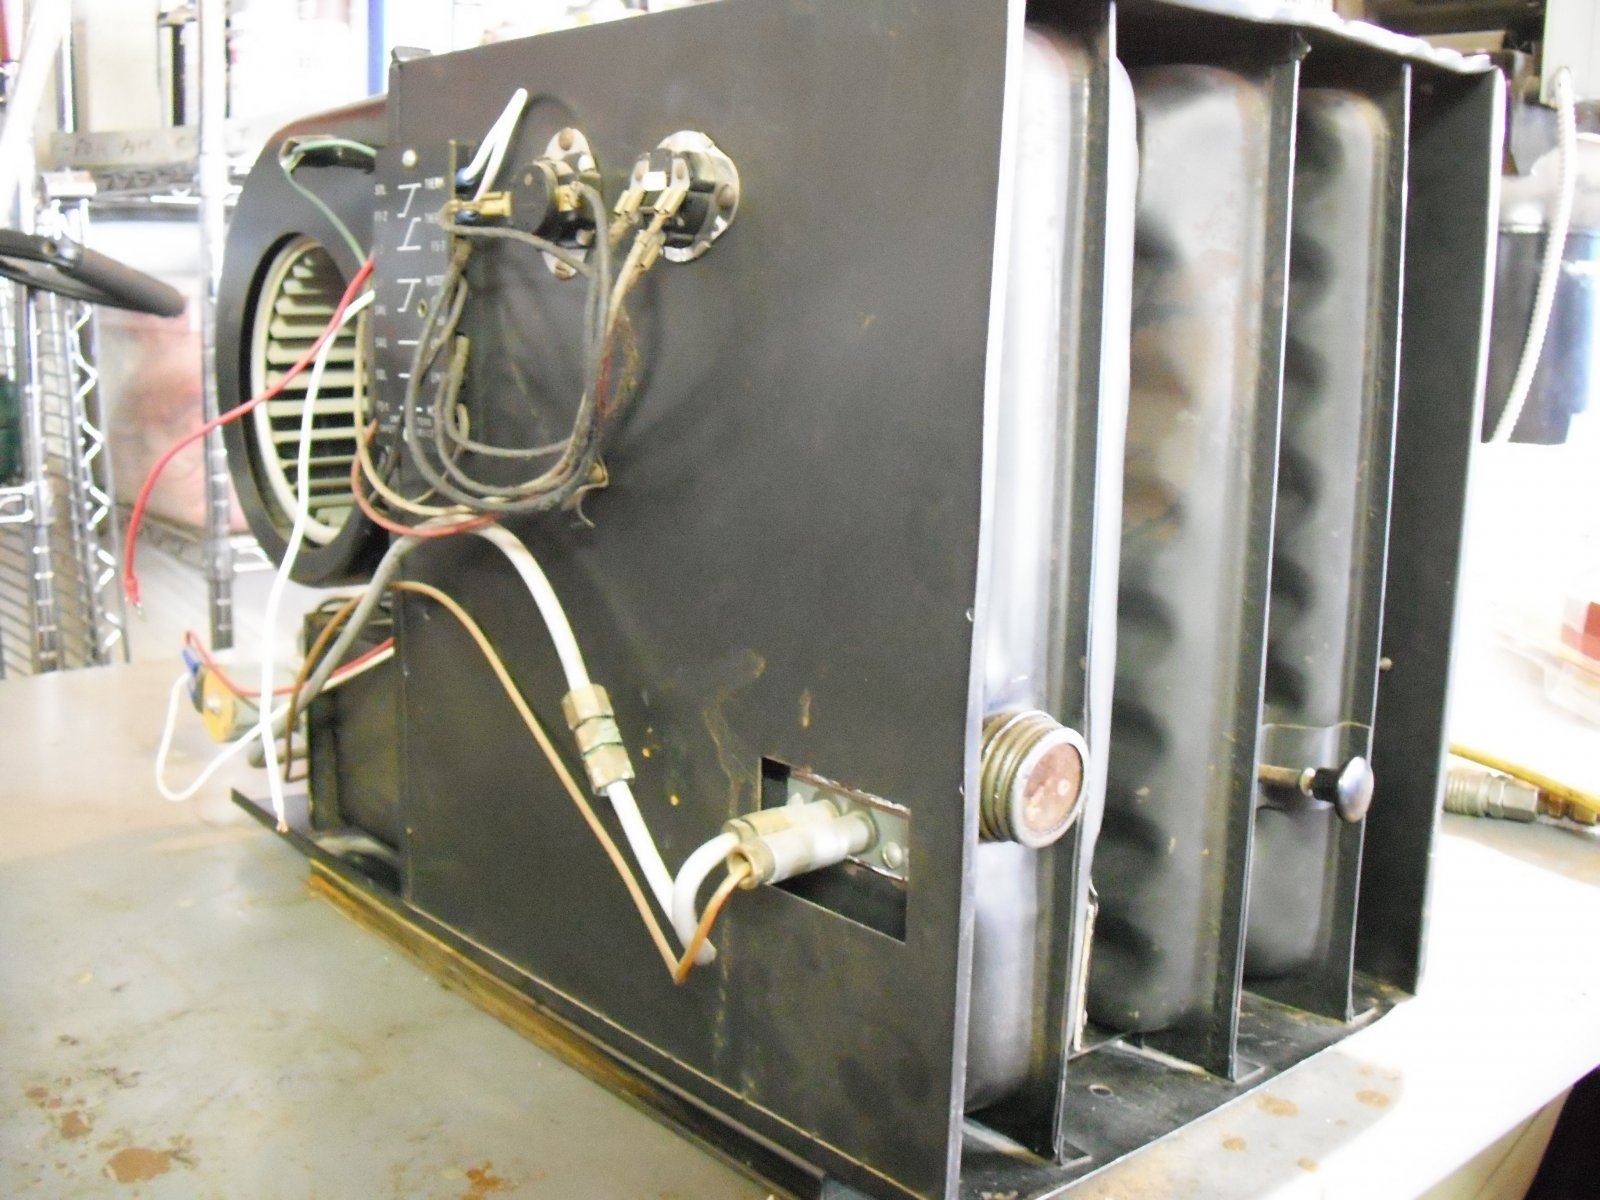 Click image for larger version  Name:Airstream Furnace 010.jpg Views:114 Size:277.6 KB ID:213203